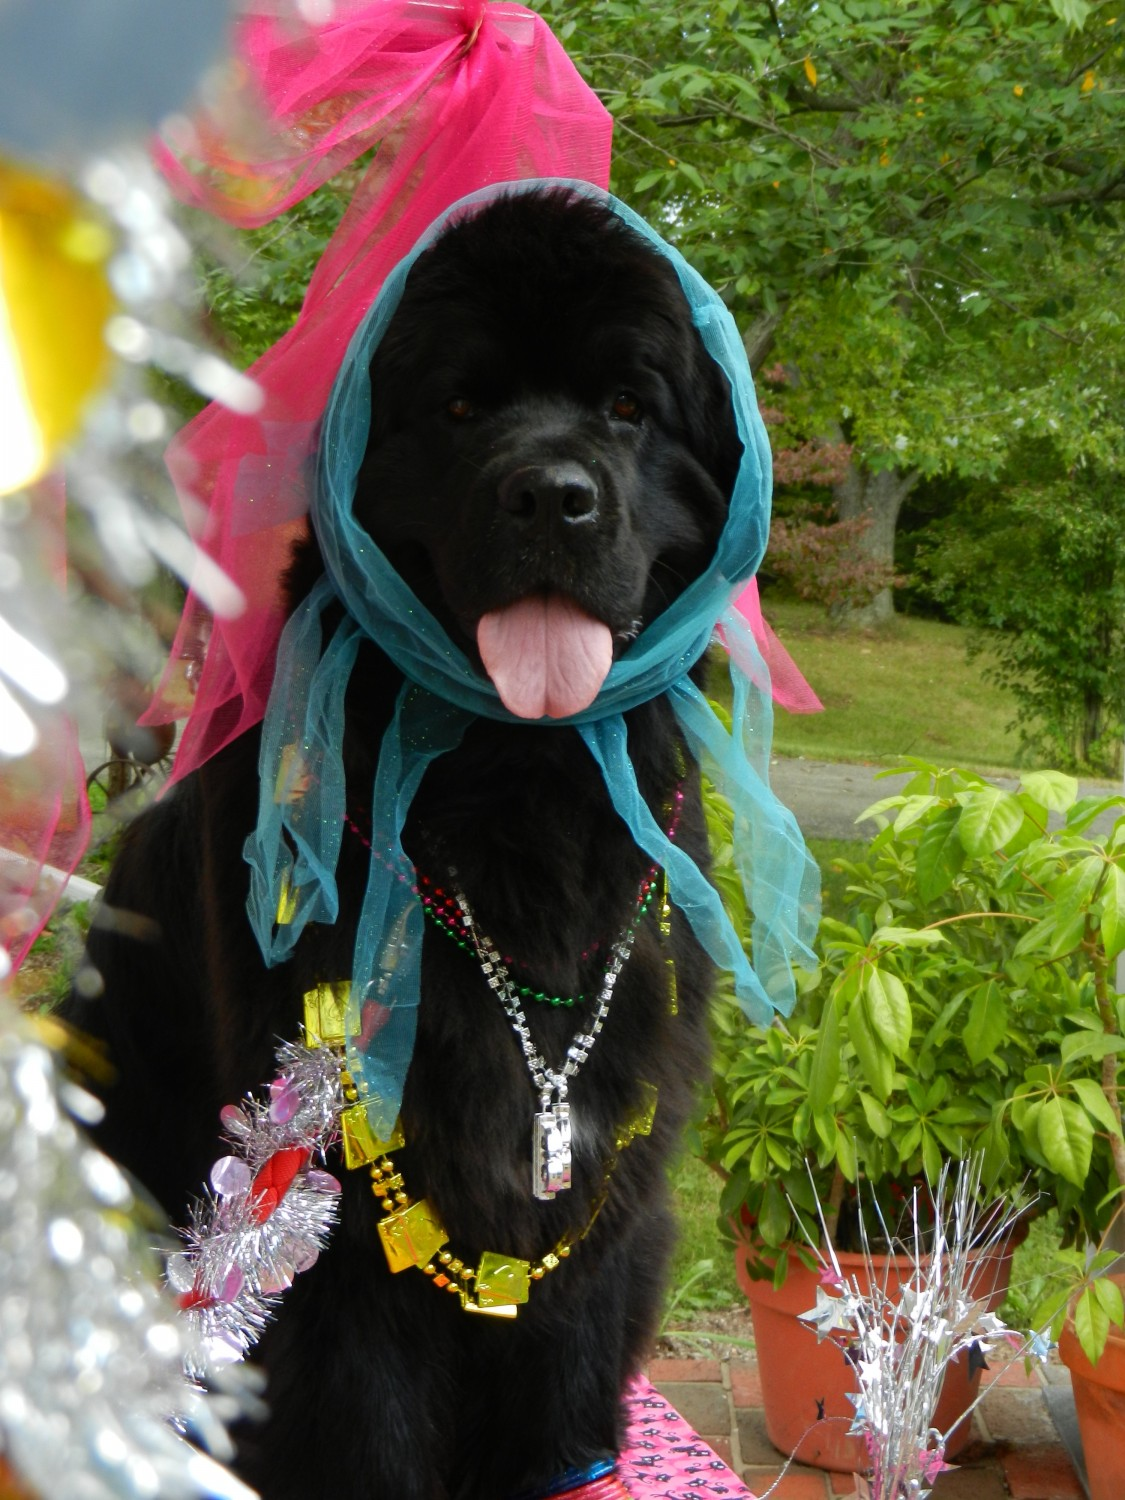 Joie, a Newfoundland, dressed up as a fortune teller